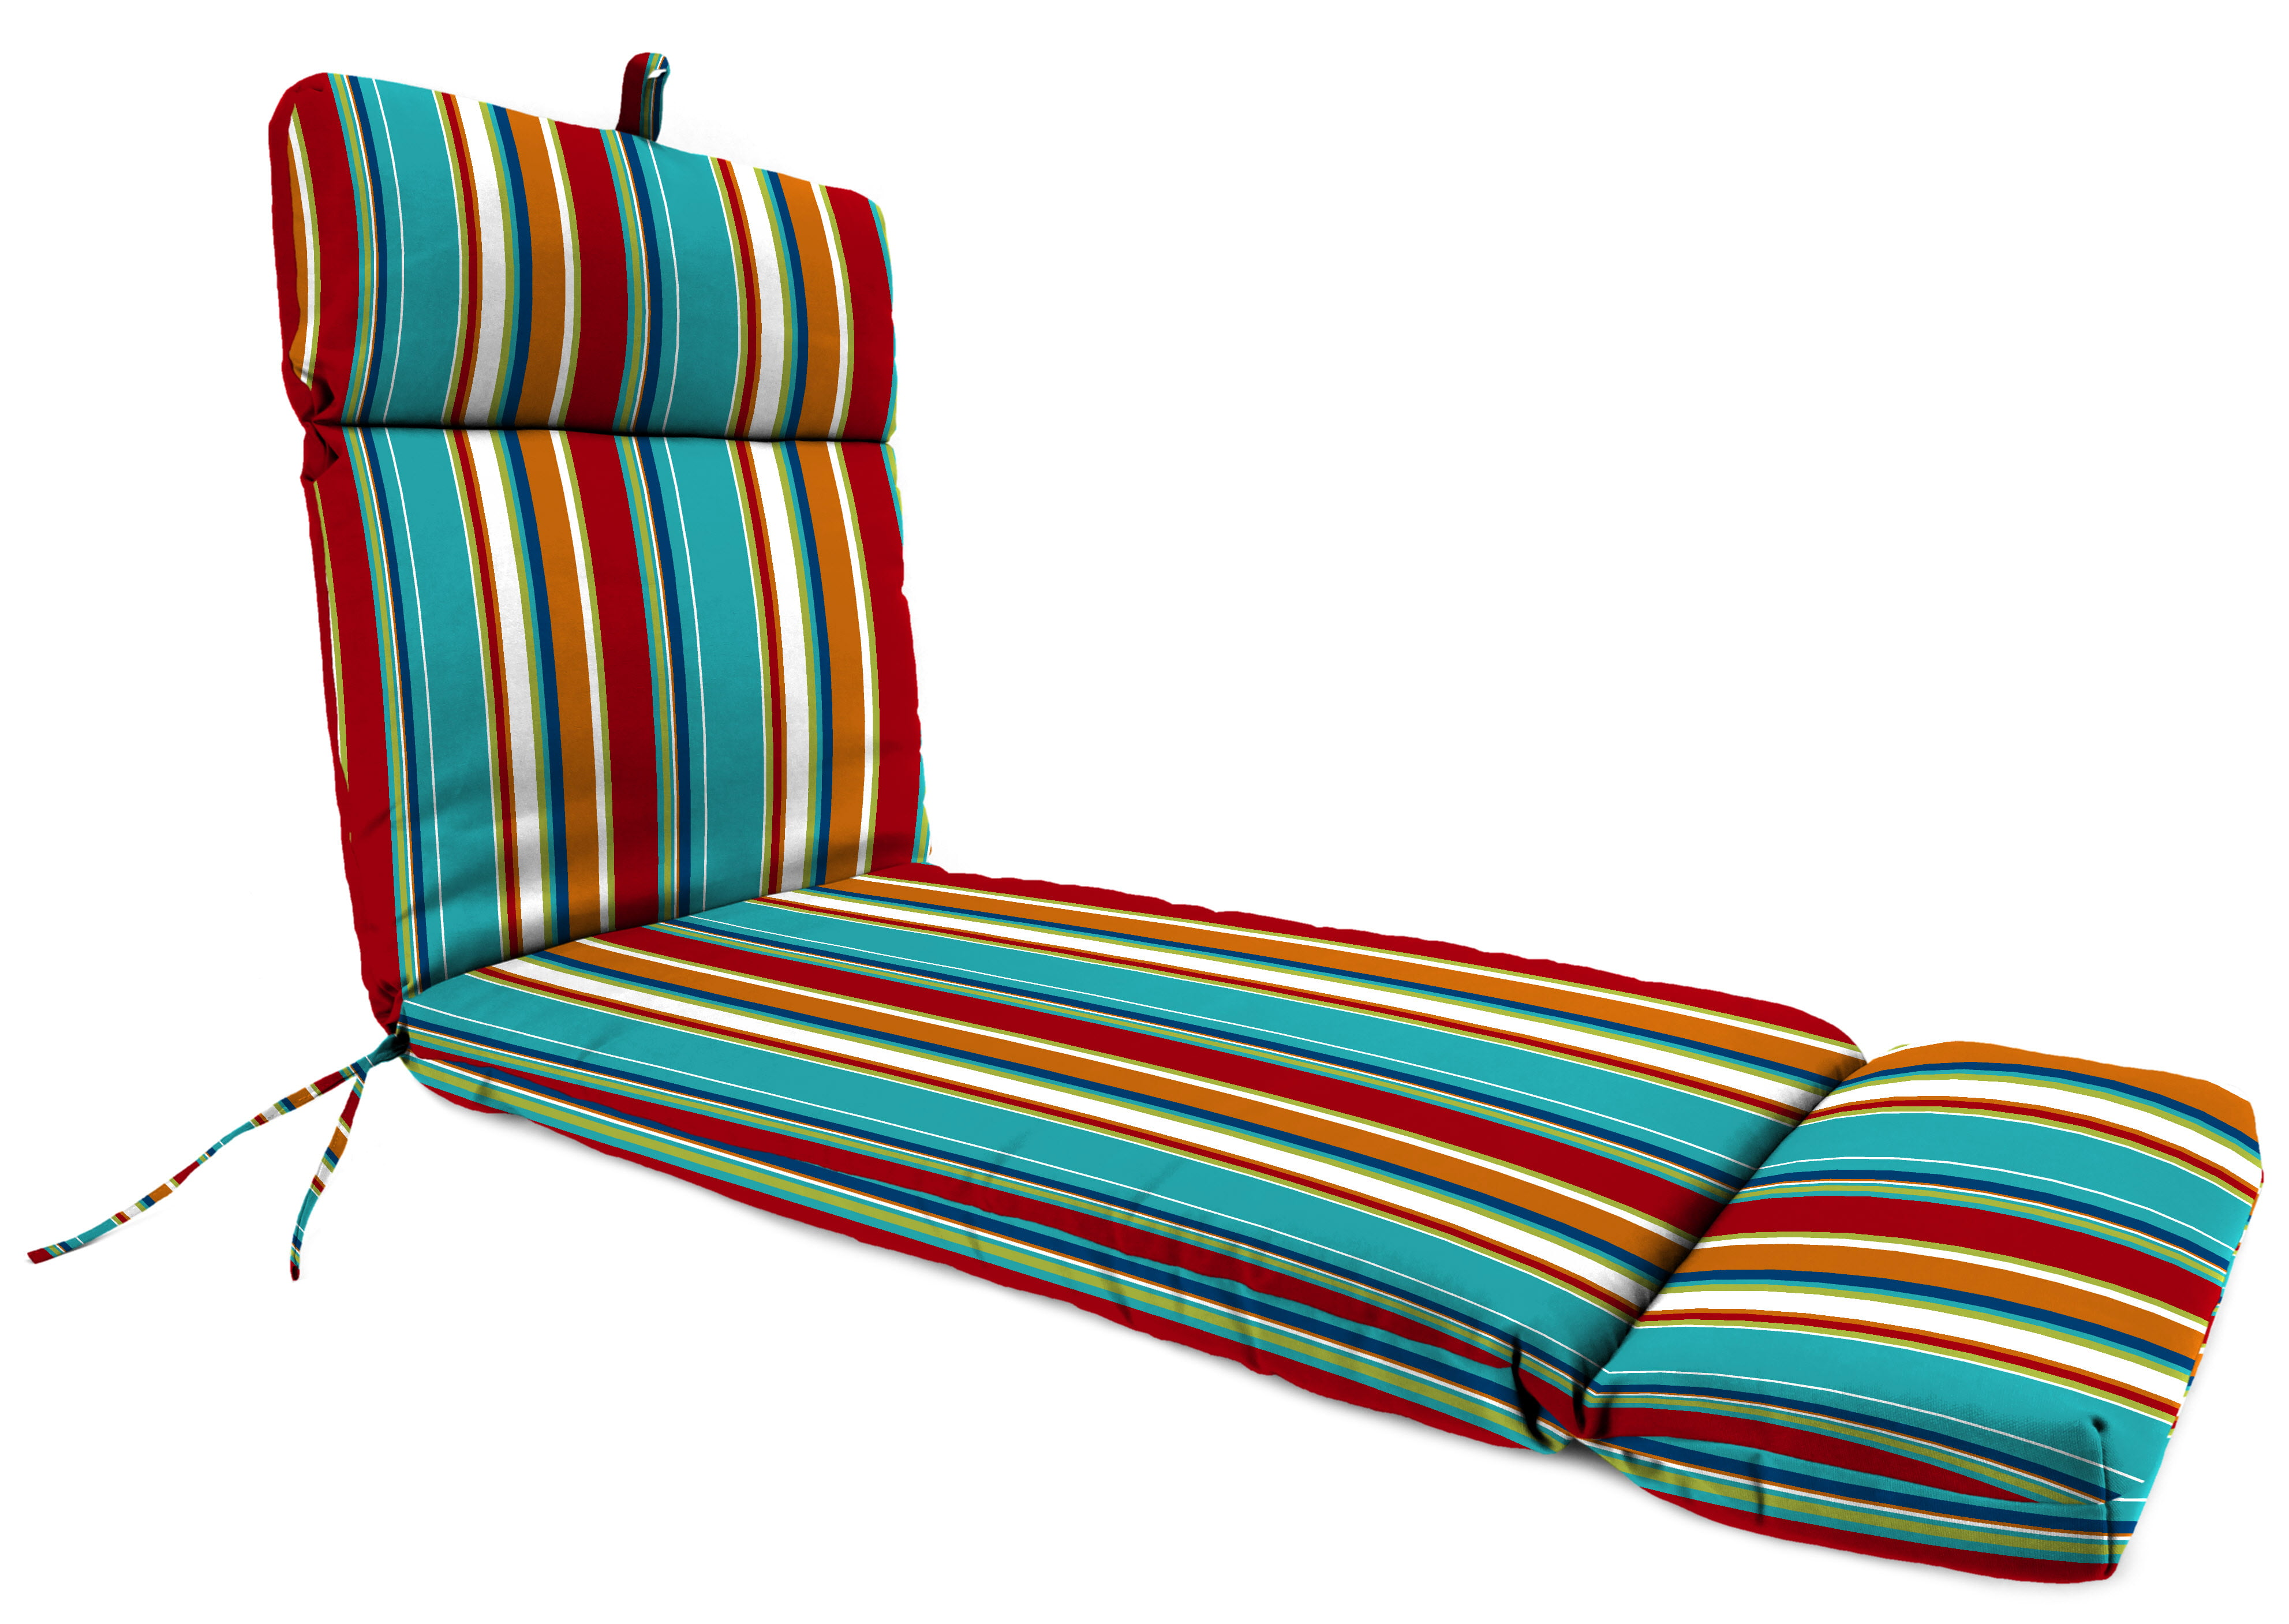 Shades of Blue Collection 72 x 22 Outdoor Chaise Lounge Cushion Choose Style